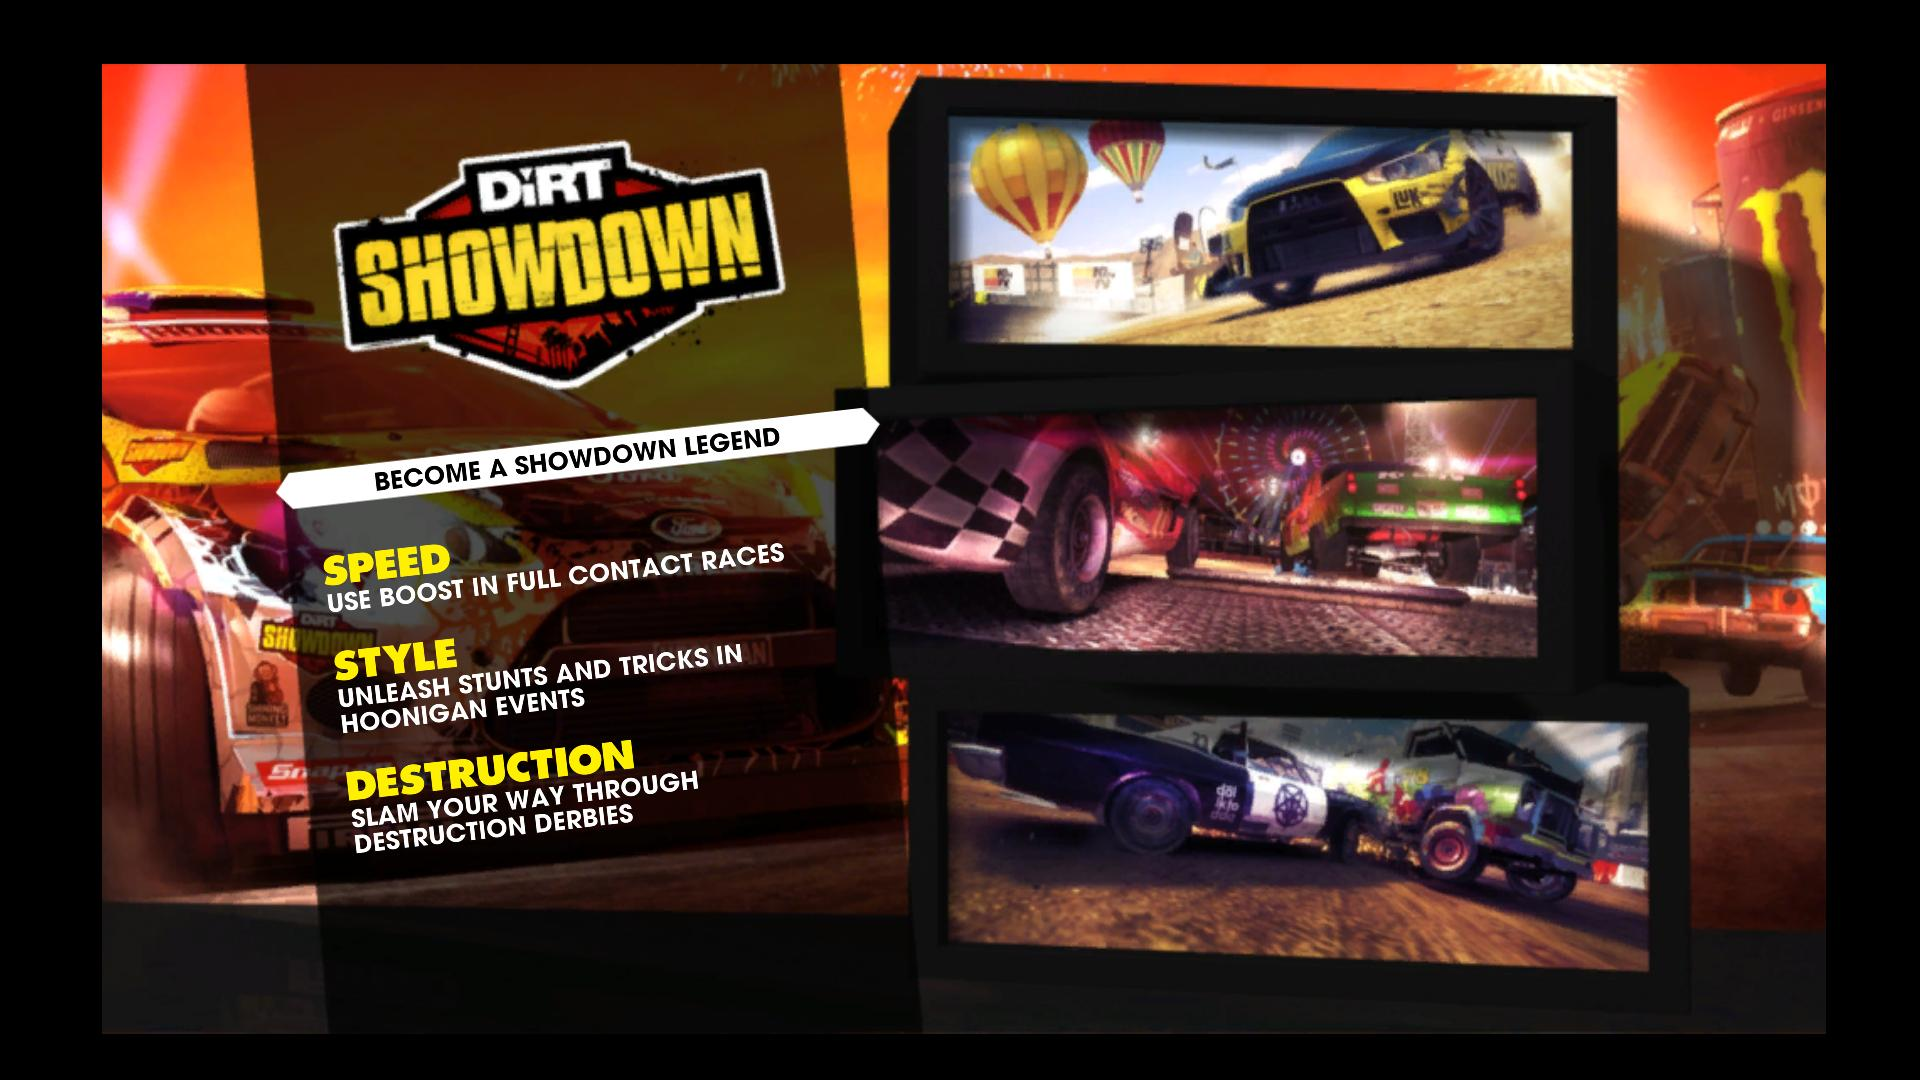 [Aporte] Imagenes de Demo y Requisitos de Dirt Showdown